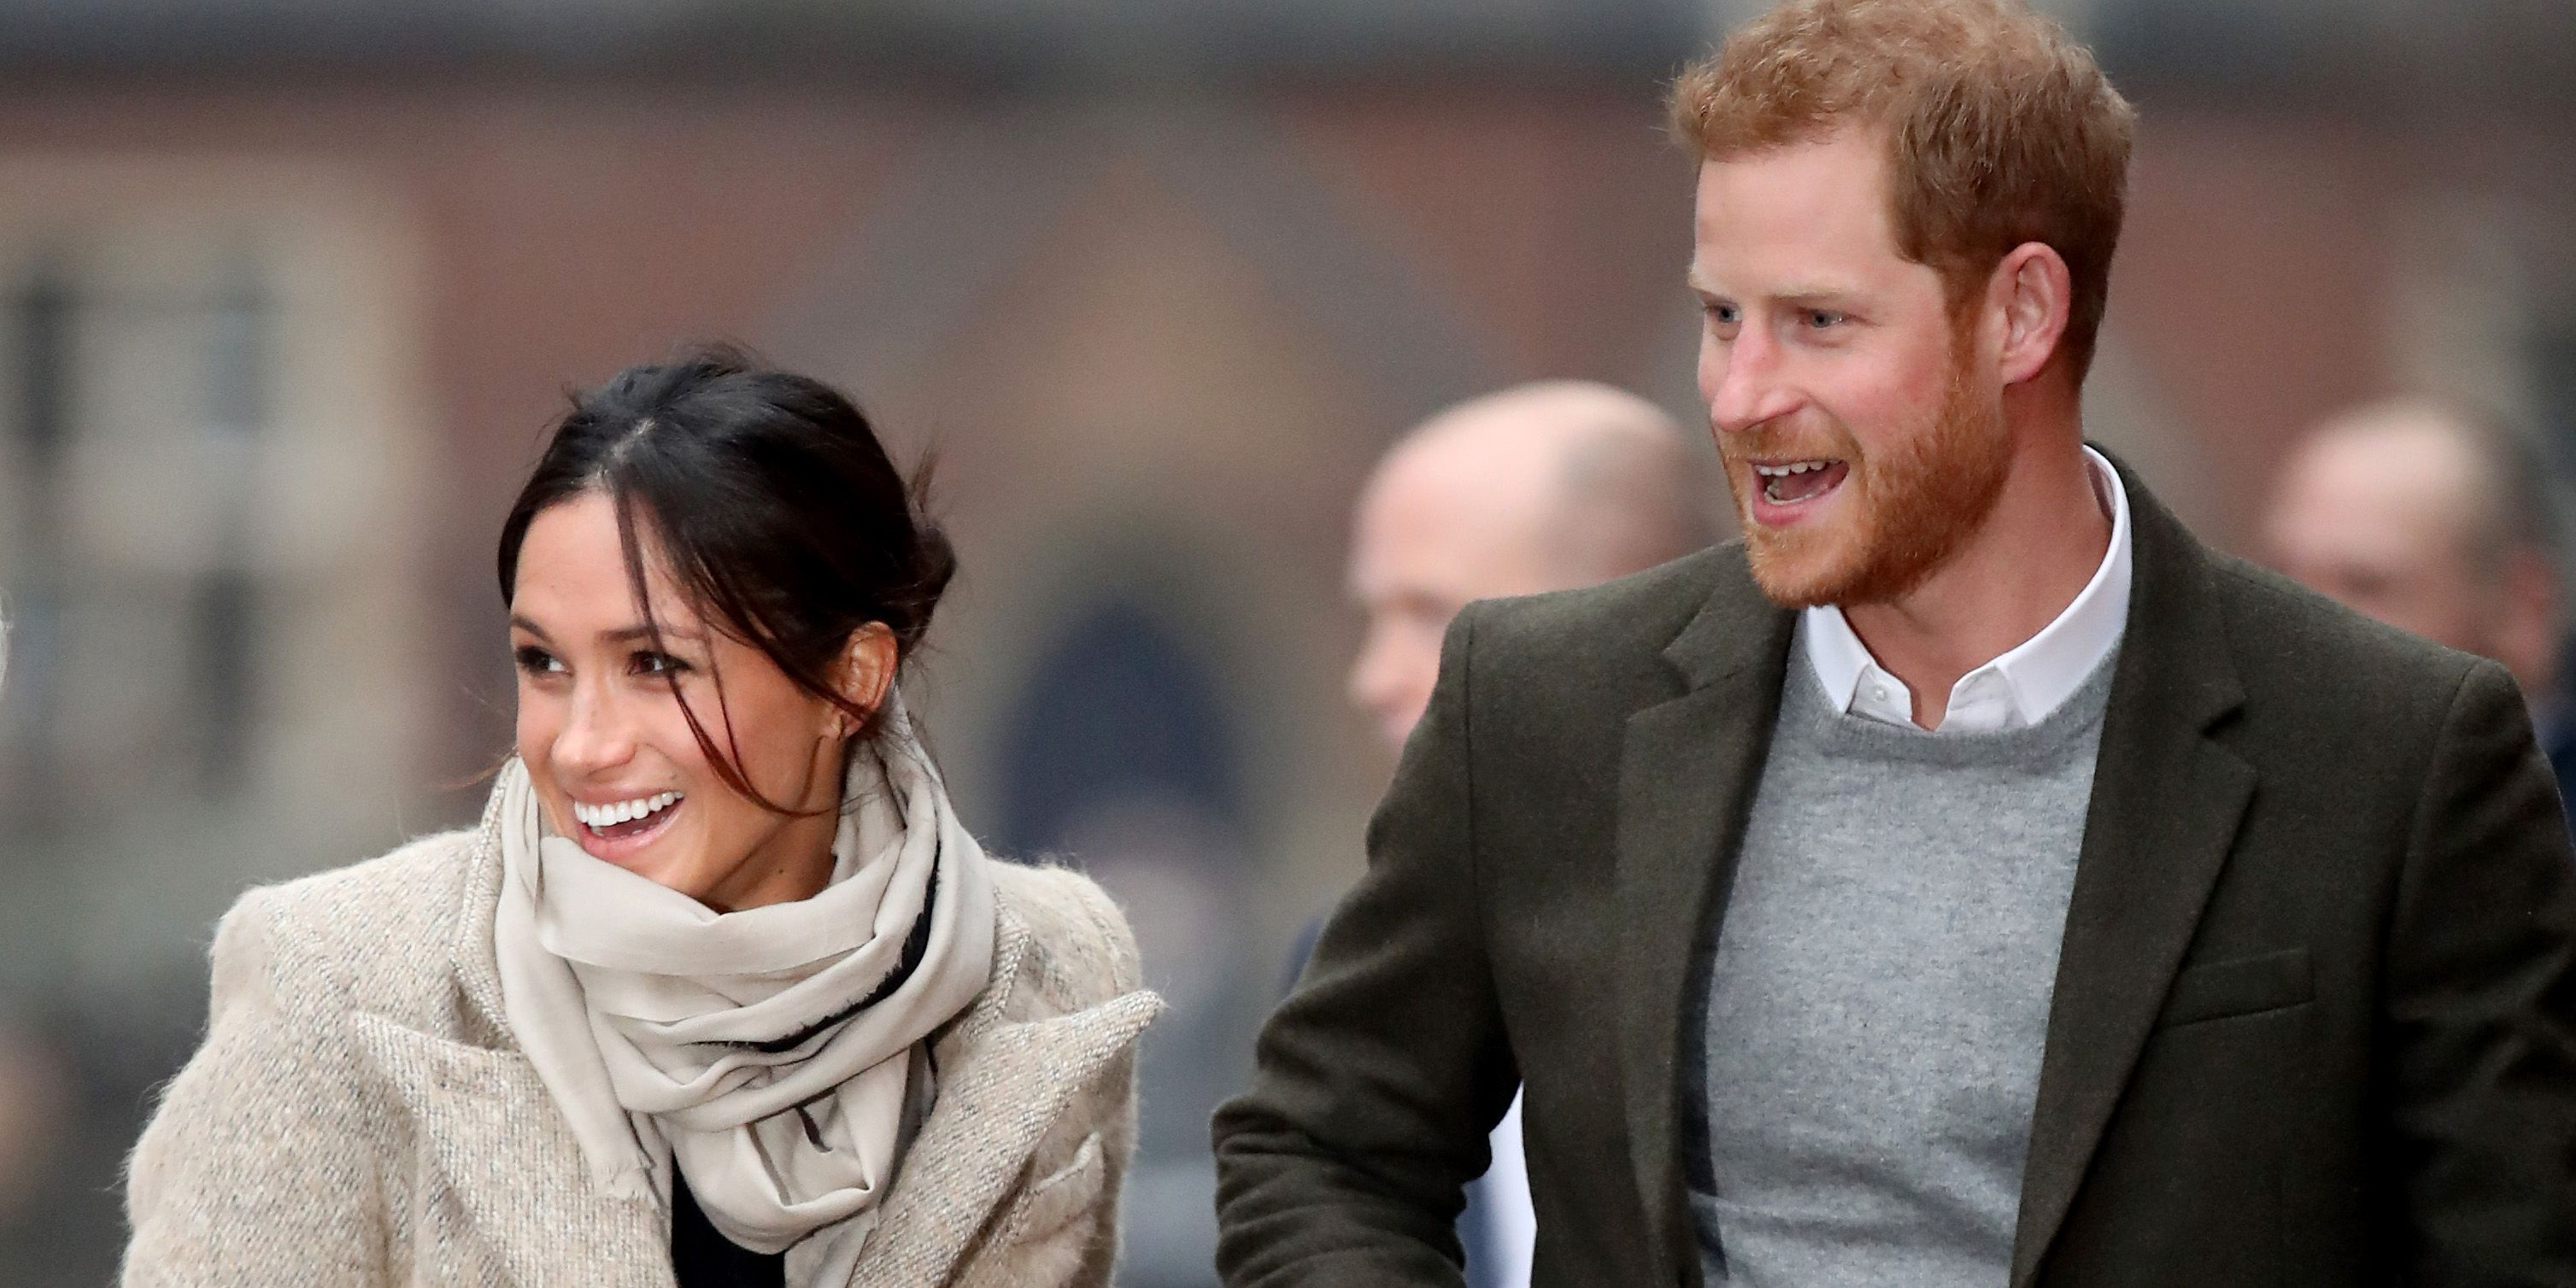 Here's how Meghan and Harry are celebrating tonight at the Royal Wedding party recommendations